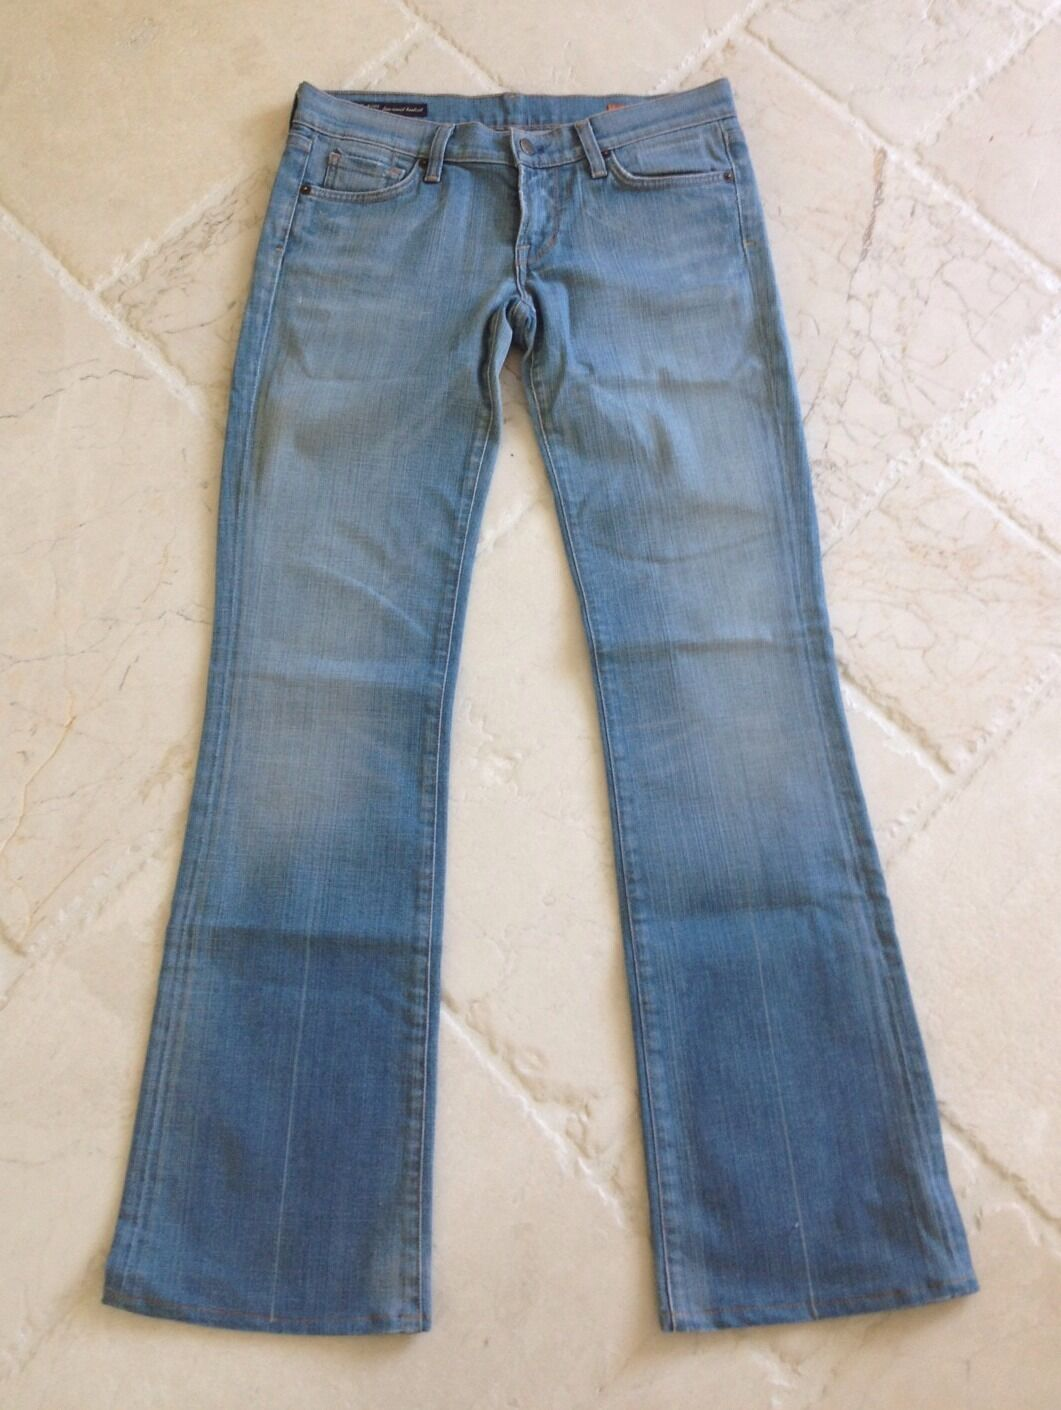 Citizens Of humanity Kelly Stretch Bootcut Jeans Sz 28